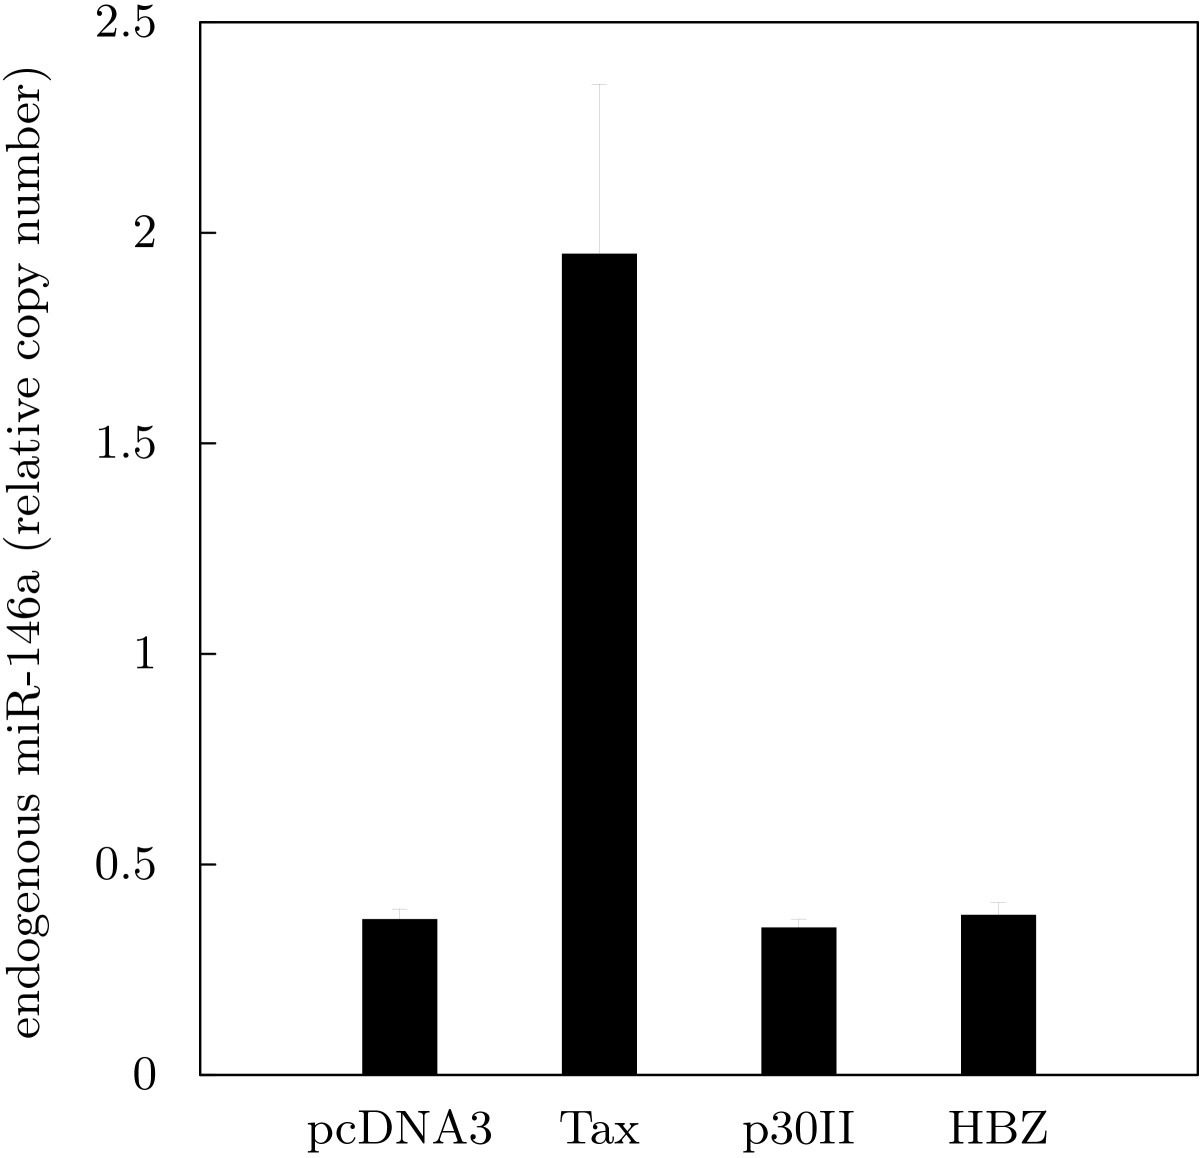 http://static-content.springer.com/image/art%3A10.1186%2F1742-4690-5-100/MediaObjects/12977_2008_Article_925_Fig3_HTML.jpg